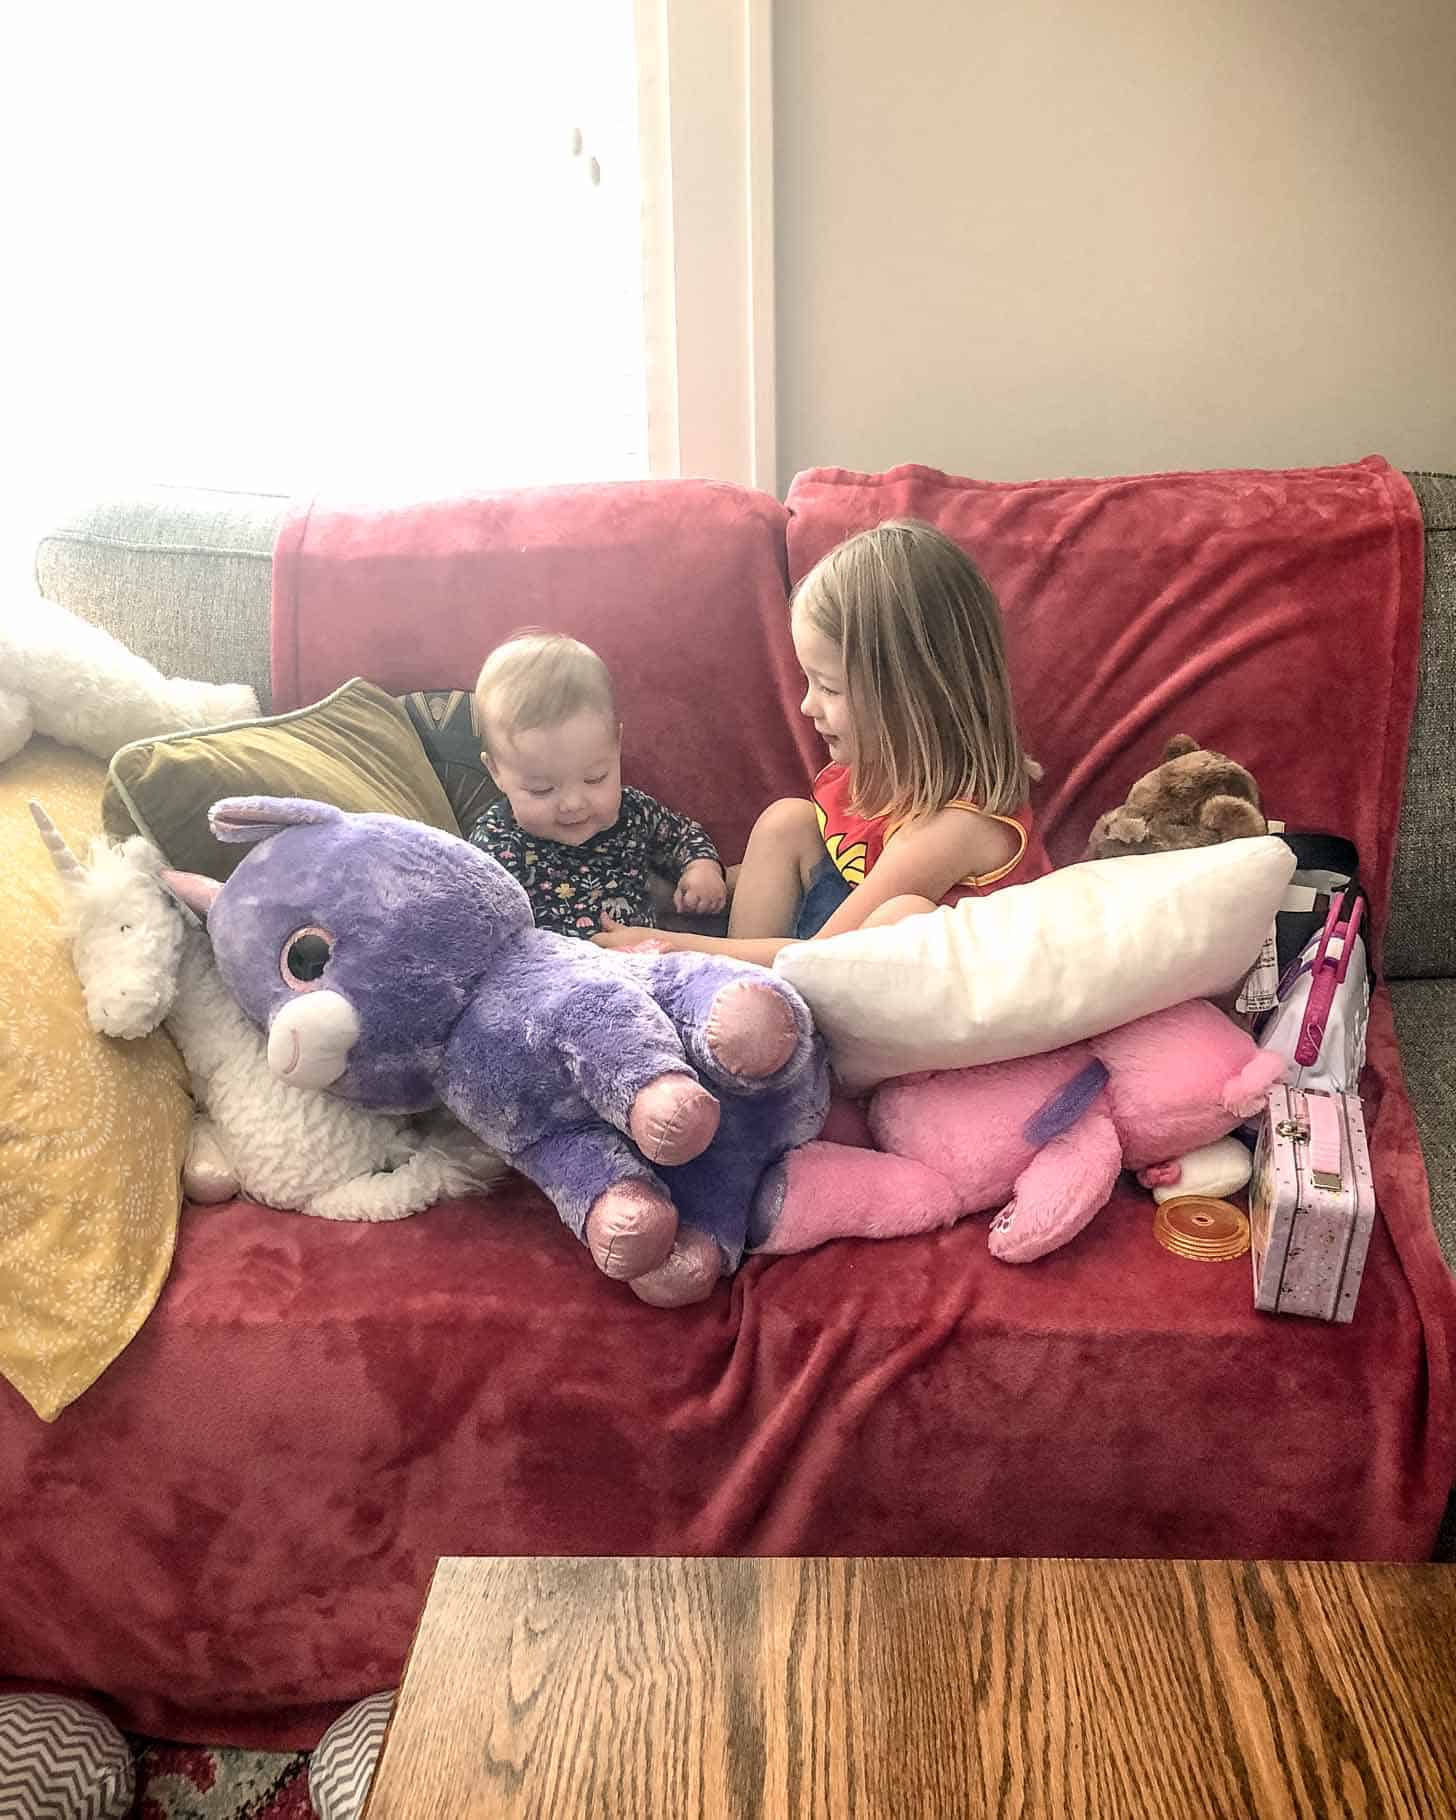 a girl and a baby in a couch fort